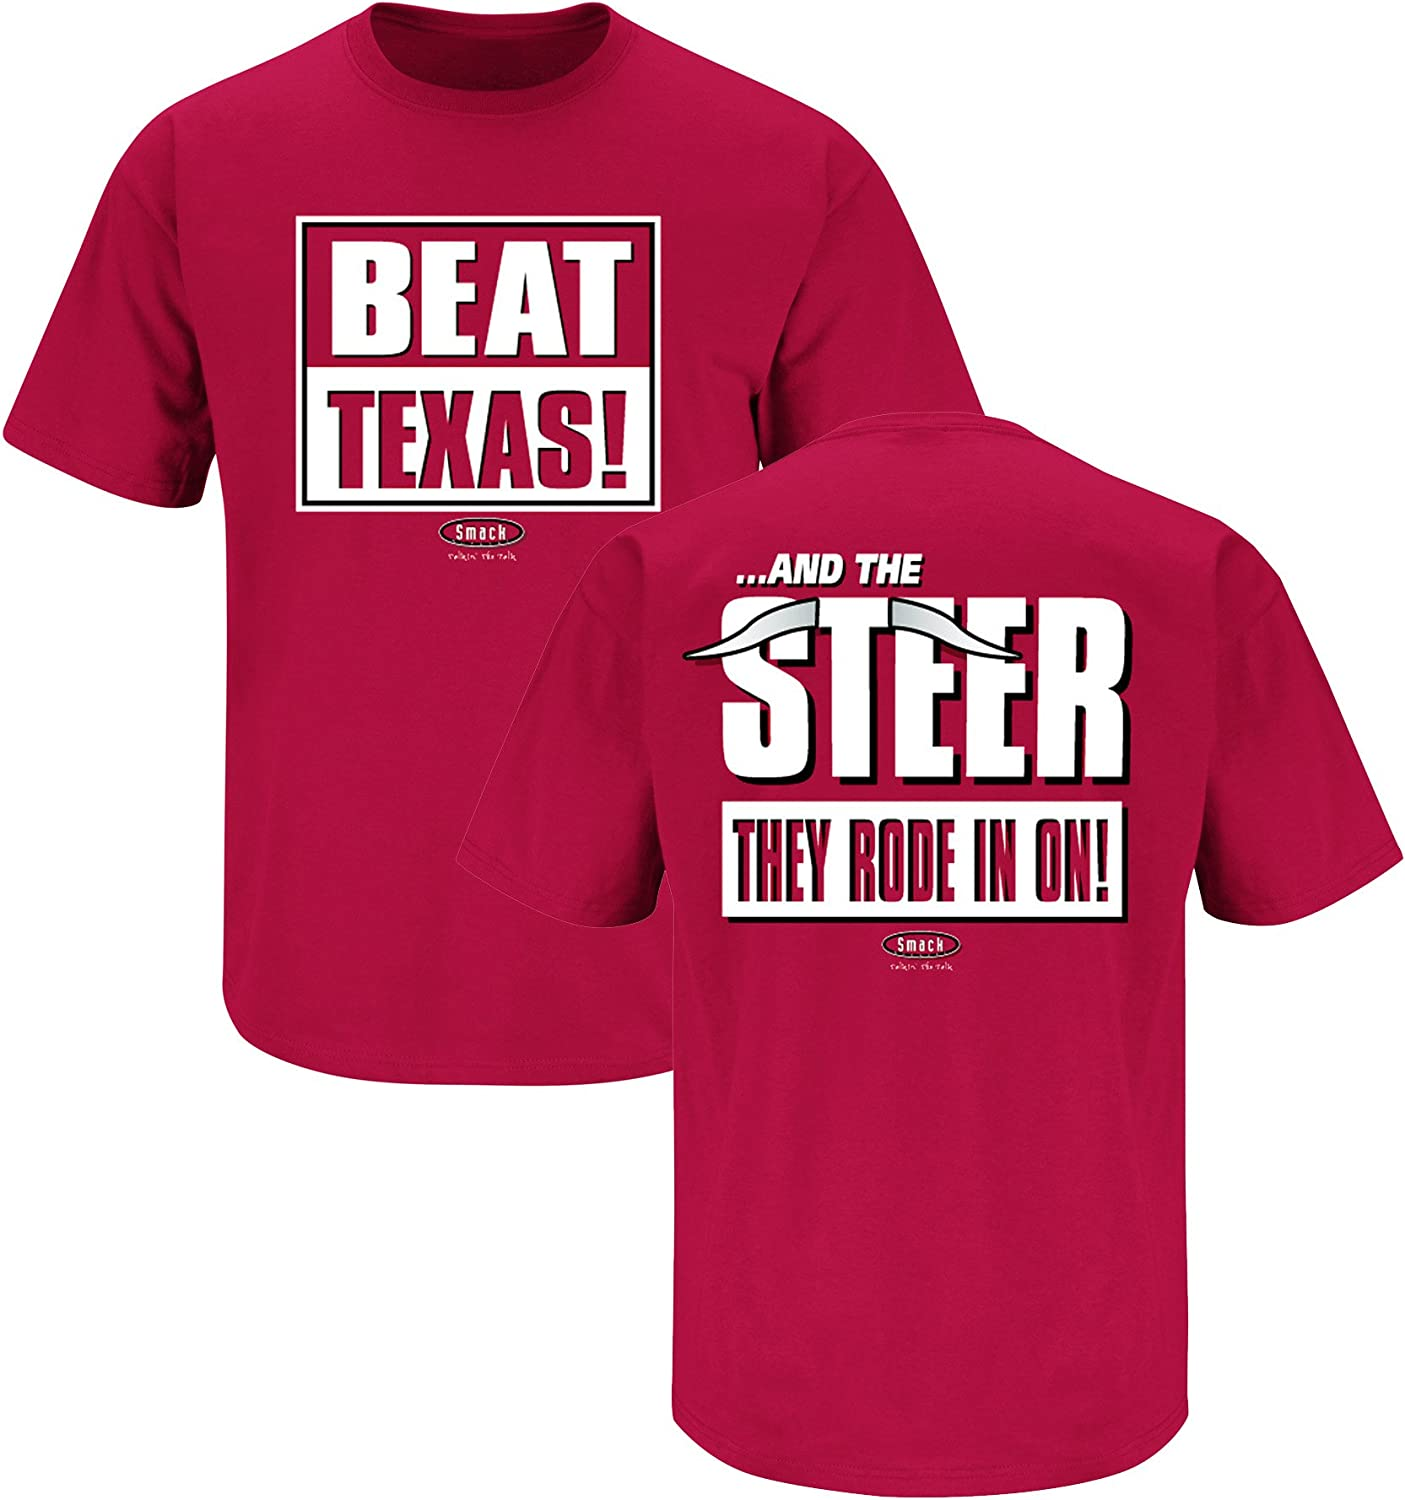 Beat Texas and The Steer They Rode in on Cardinal T Shirt Sm-5X Smack Apparel Oklahoma Football Fans